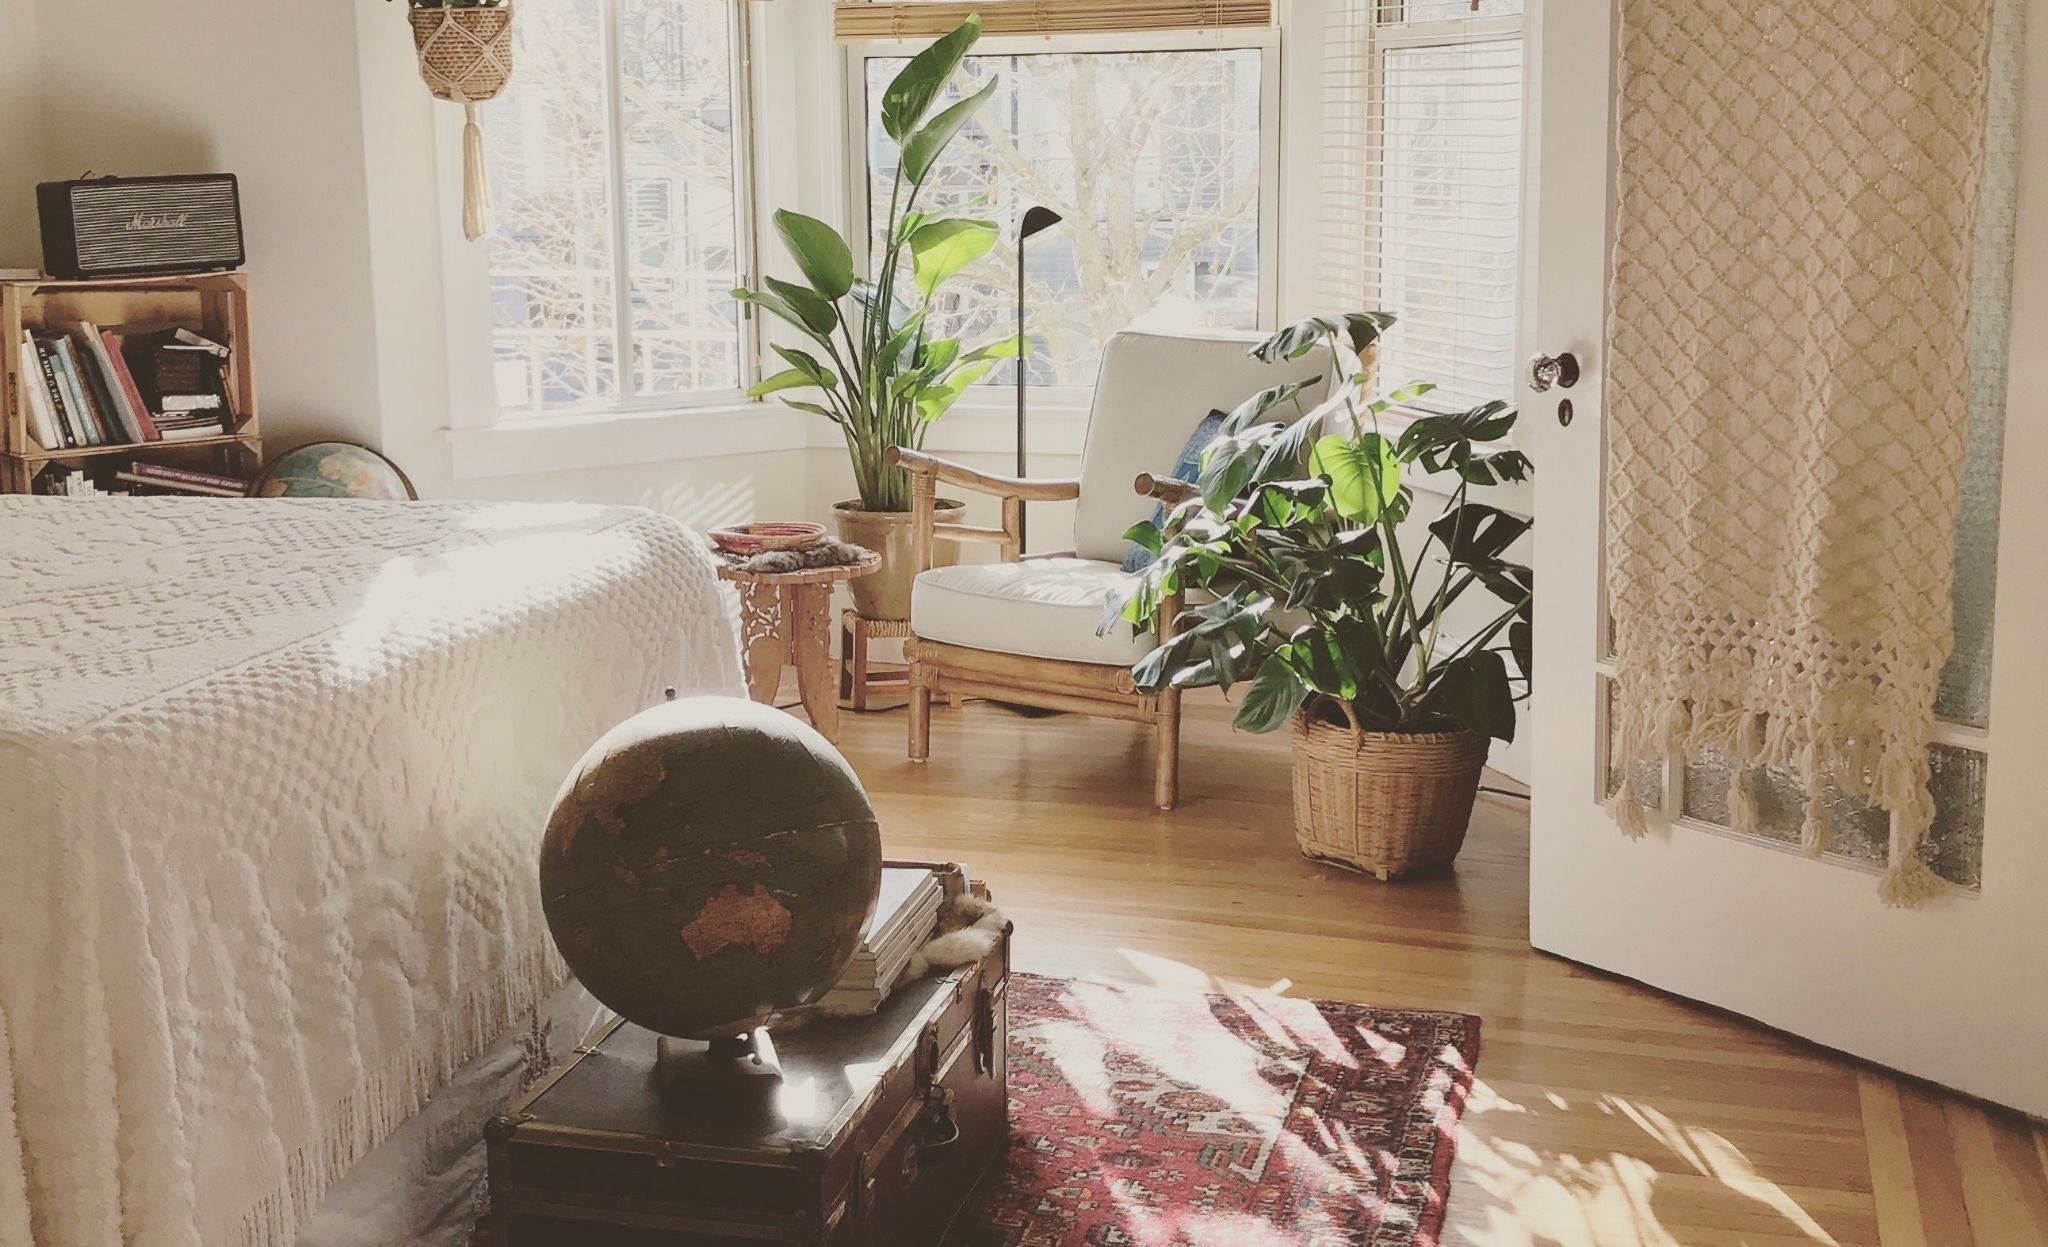 20 Interior Design Micro-Influencers that Put Your Pinterest Boards to Shame